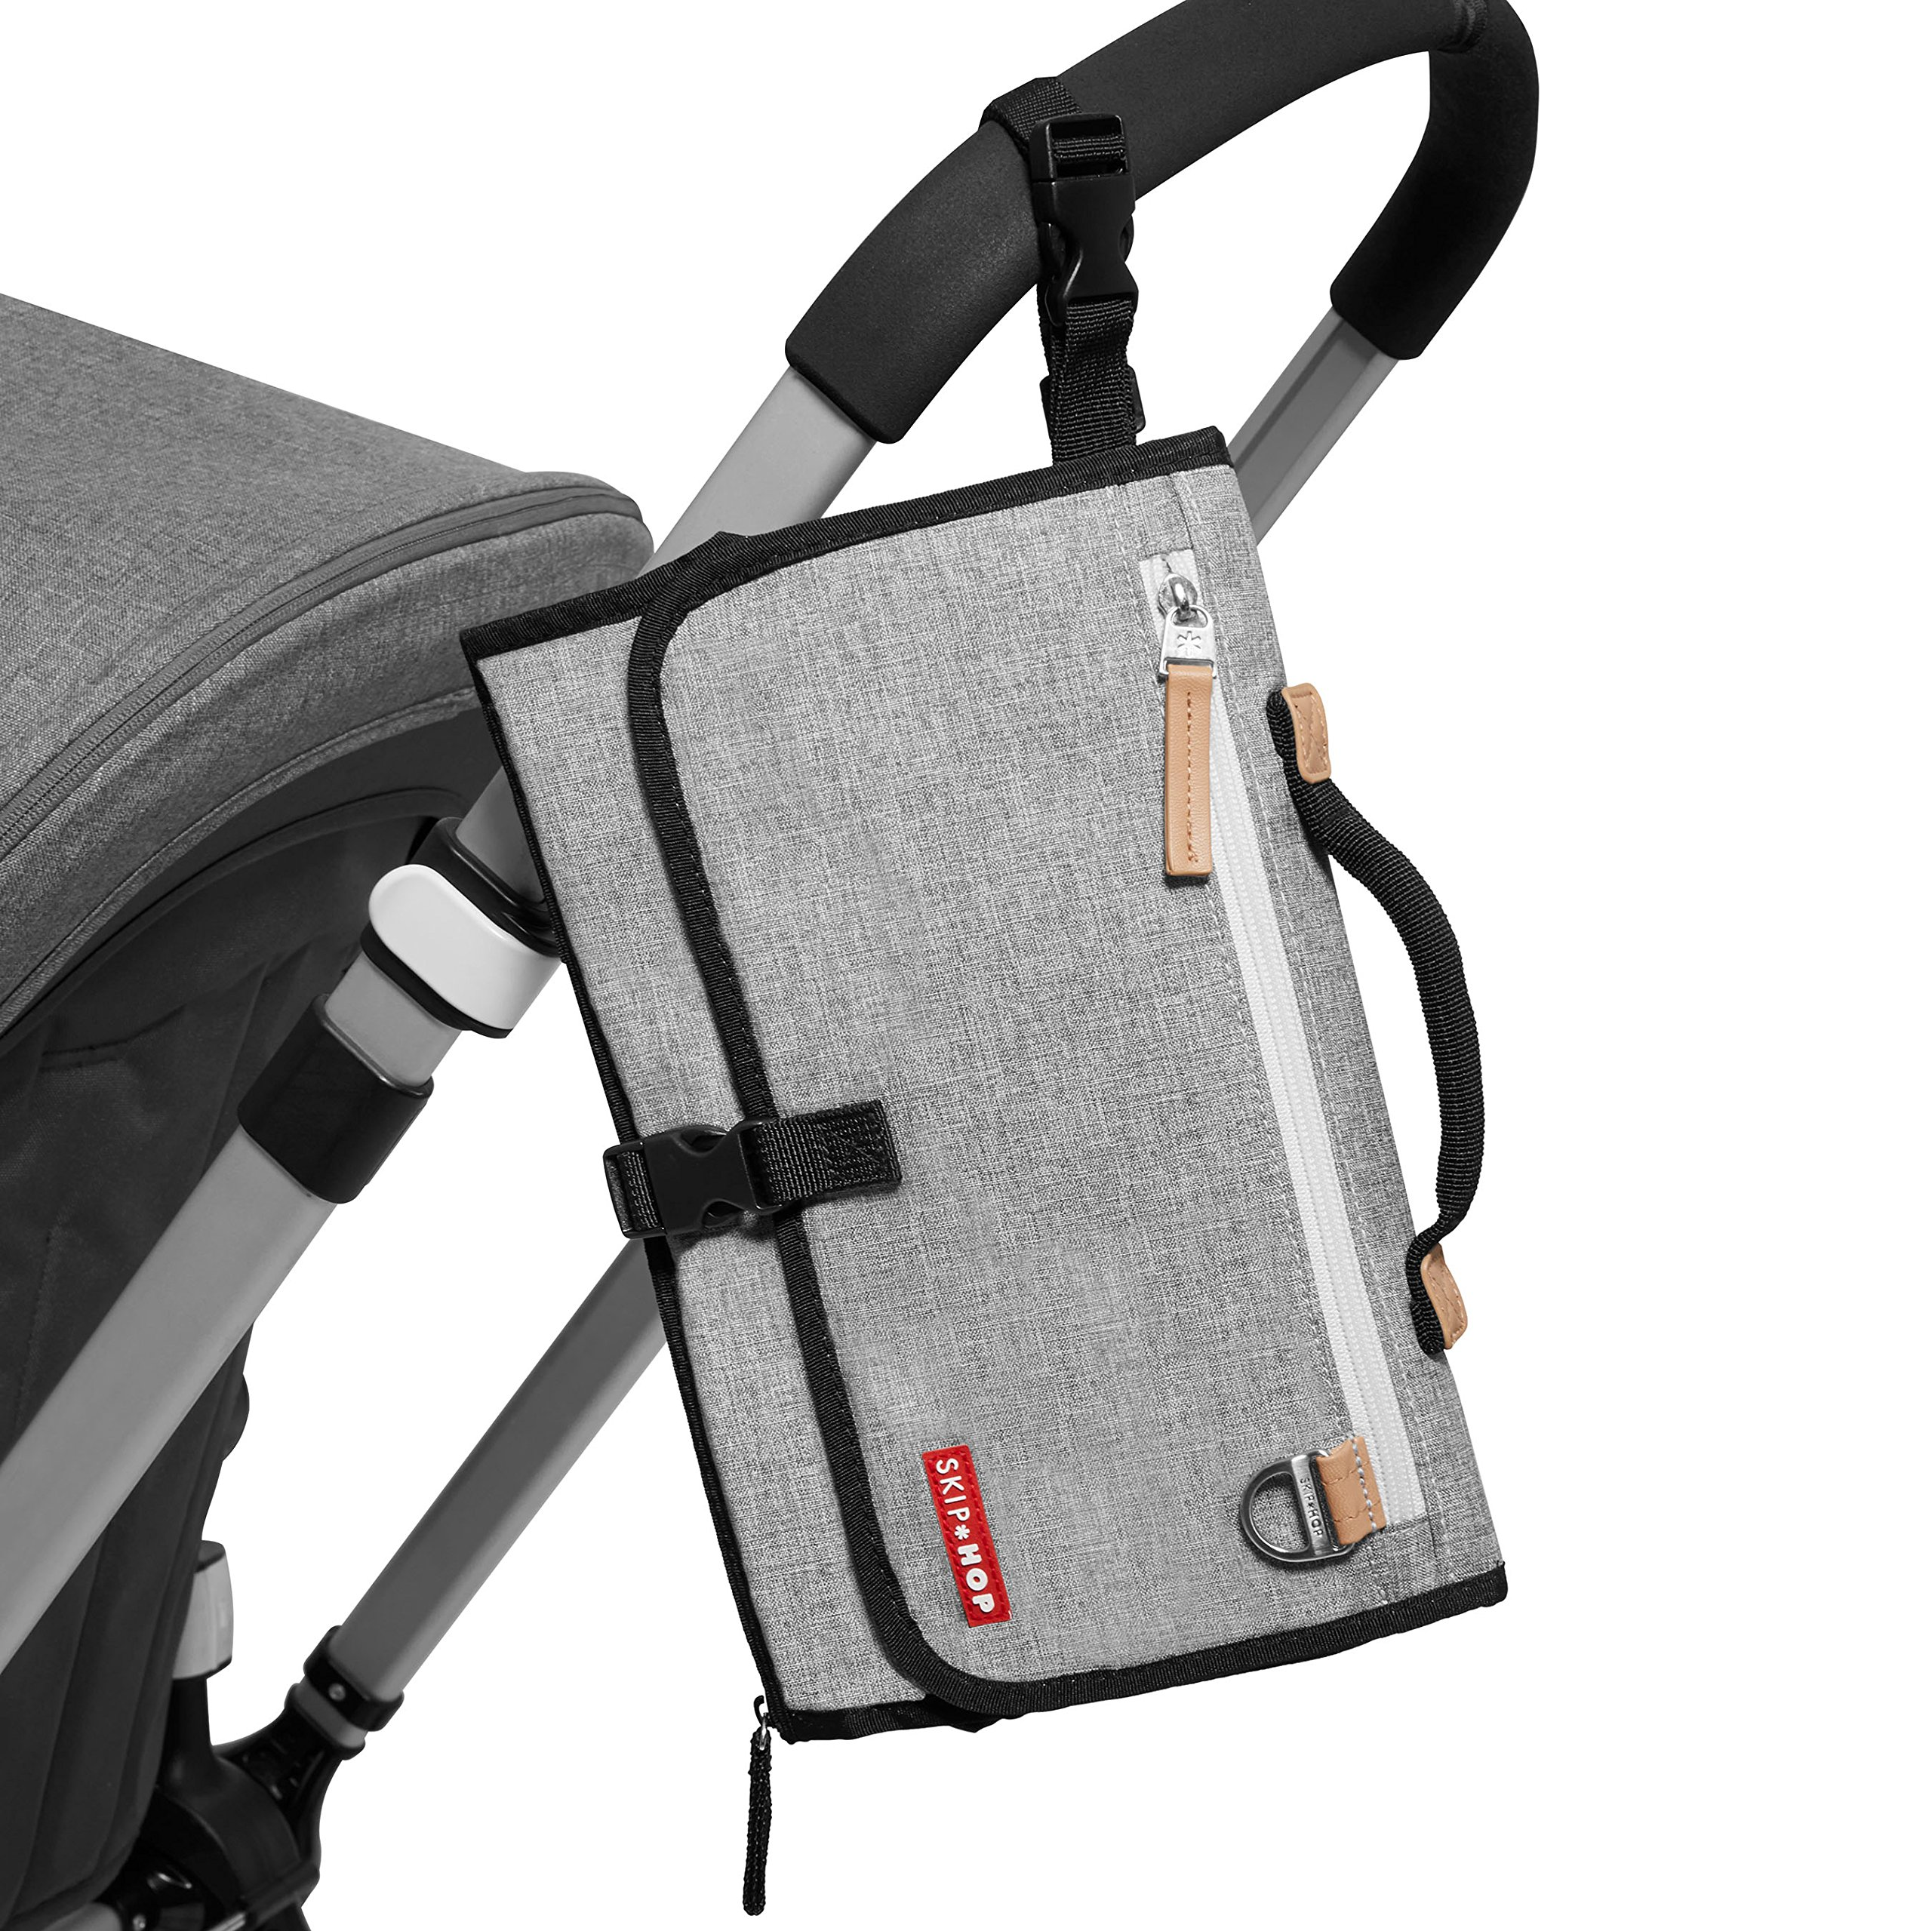 Skip Hop Pronto Signature Portable Changing Mat, Cushioned Diaper Changing Pad with Built-in Pillow, Grey Melange by Skip Hop (Image #7)